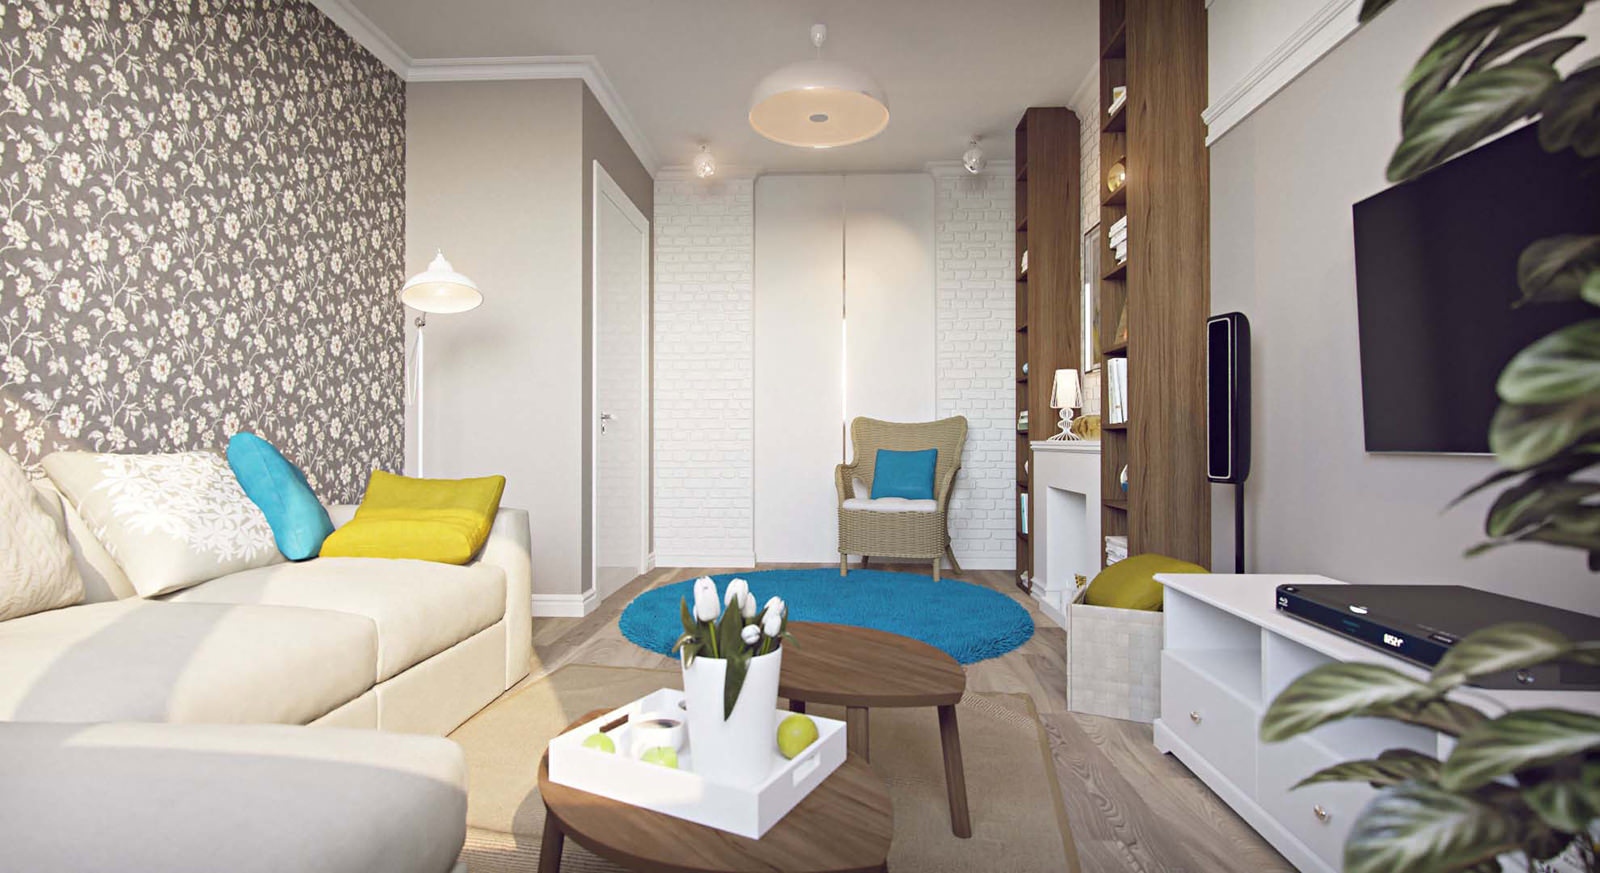 Design Of A One Room Apartment 45 M2 Tips 75 Photos Of Interiors